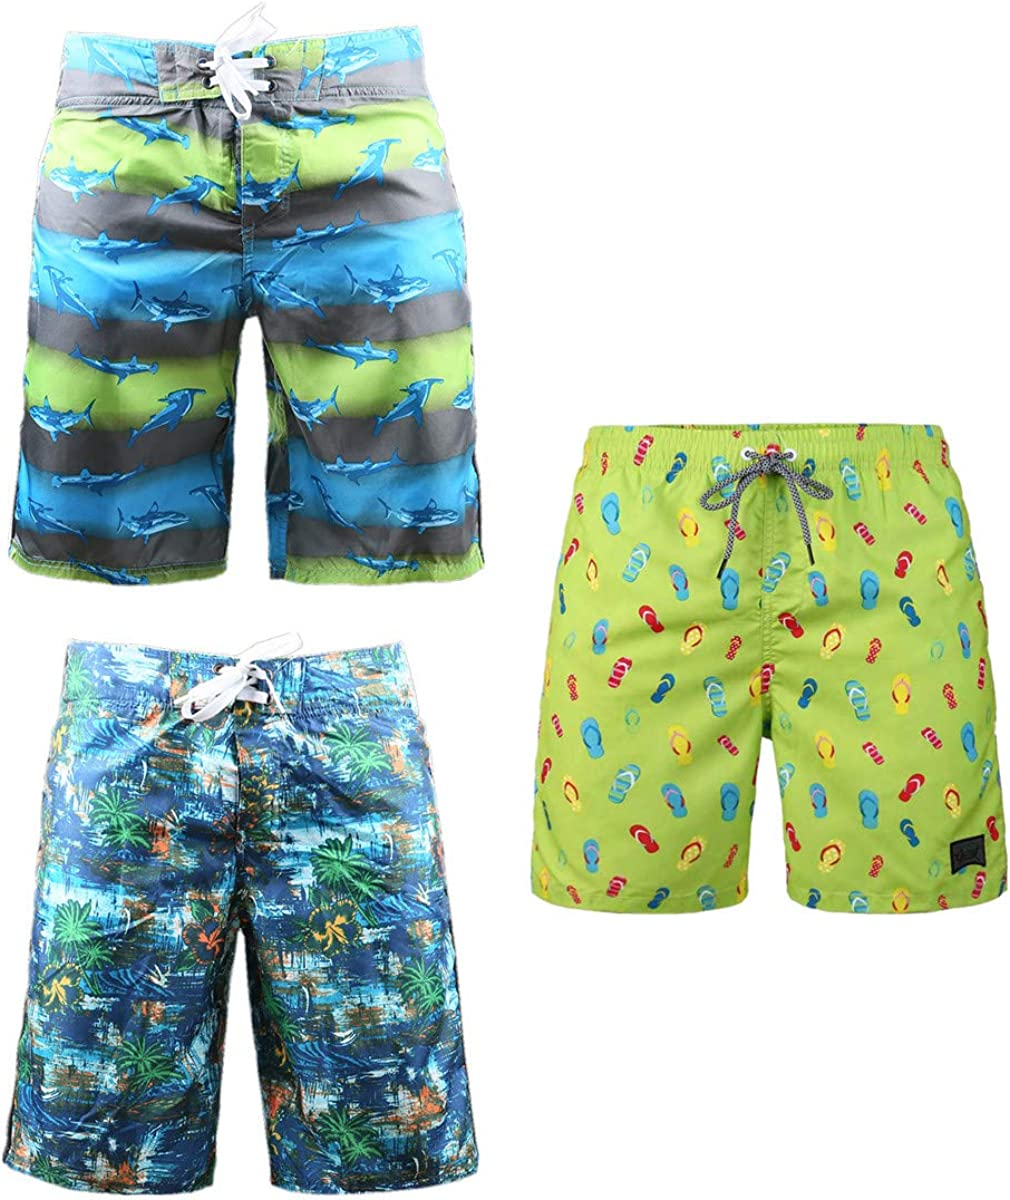 Challenge the lowest price 3-Pack Men's Board Shorts with Beach Smoot Blue excellence Vacation Pockets